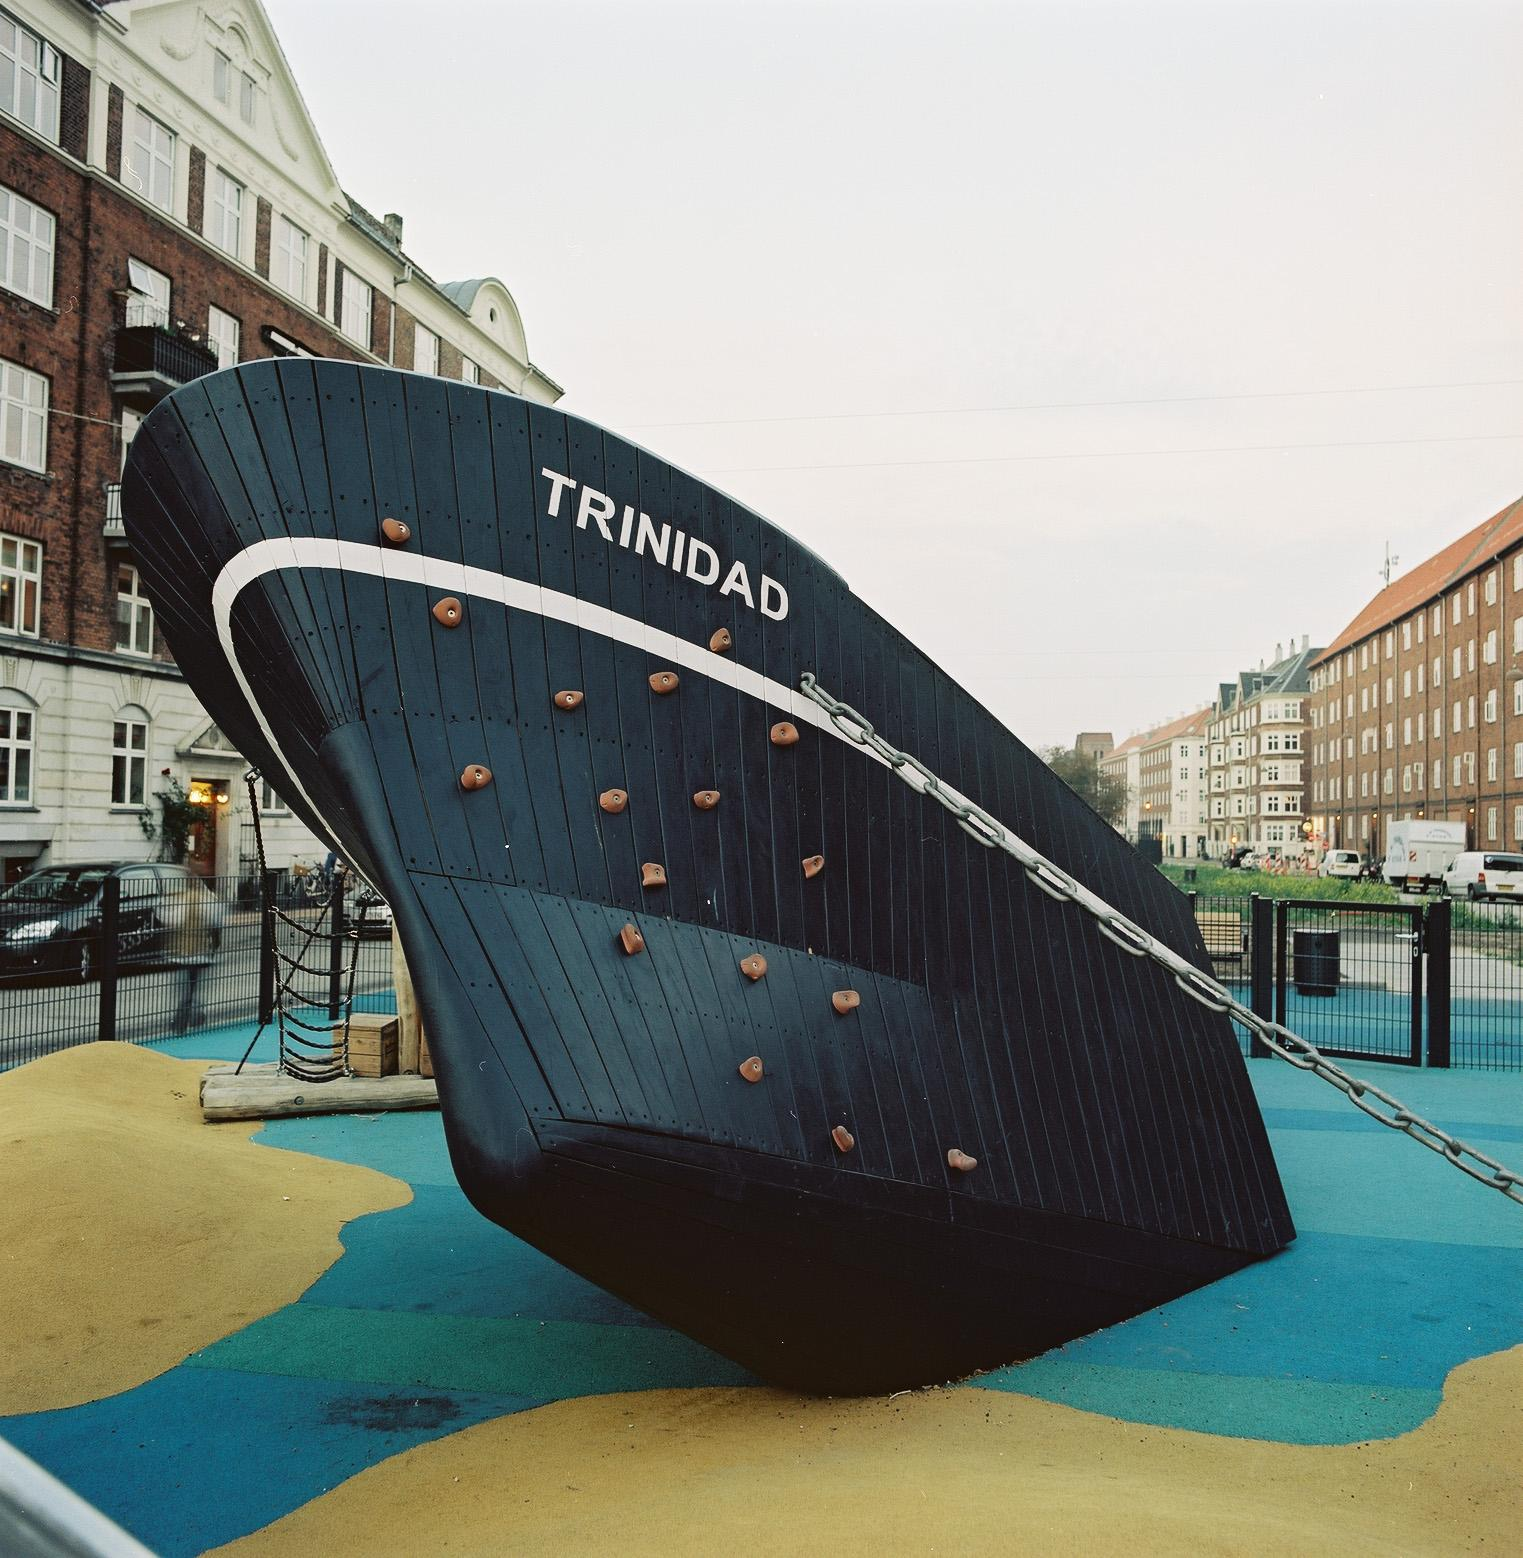 Trinidad coaster ship monstrum copenhagen playground